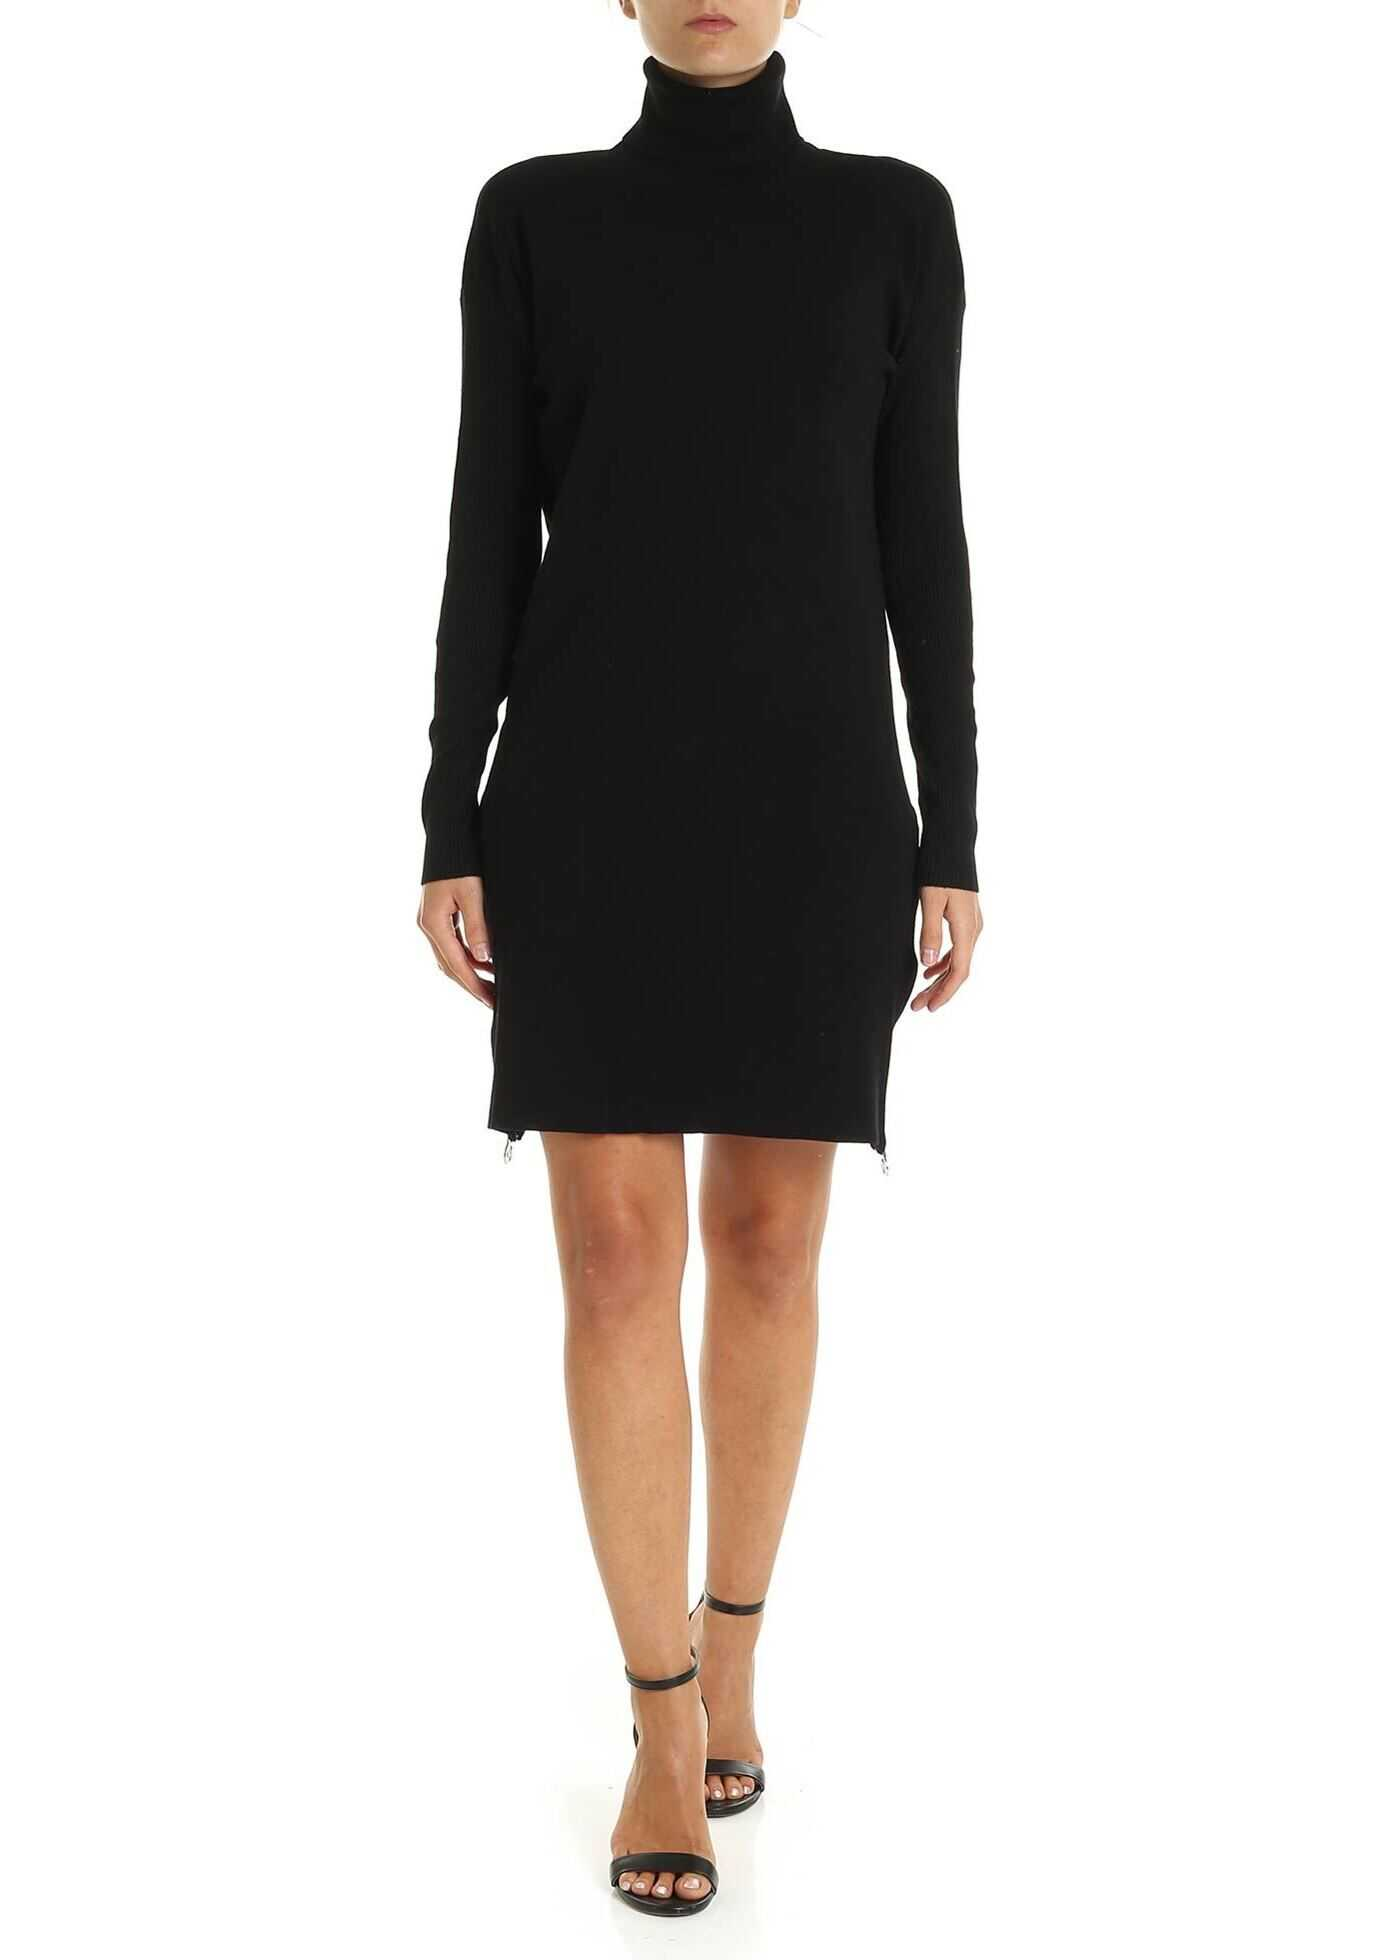 Black Knit Dress With Zip thumbnail